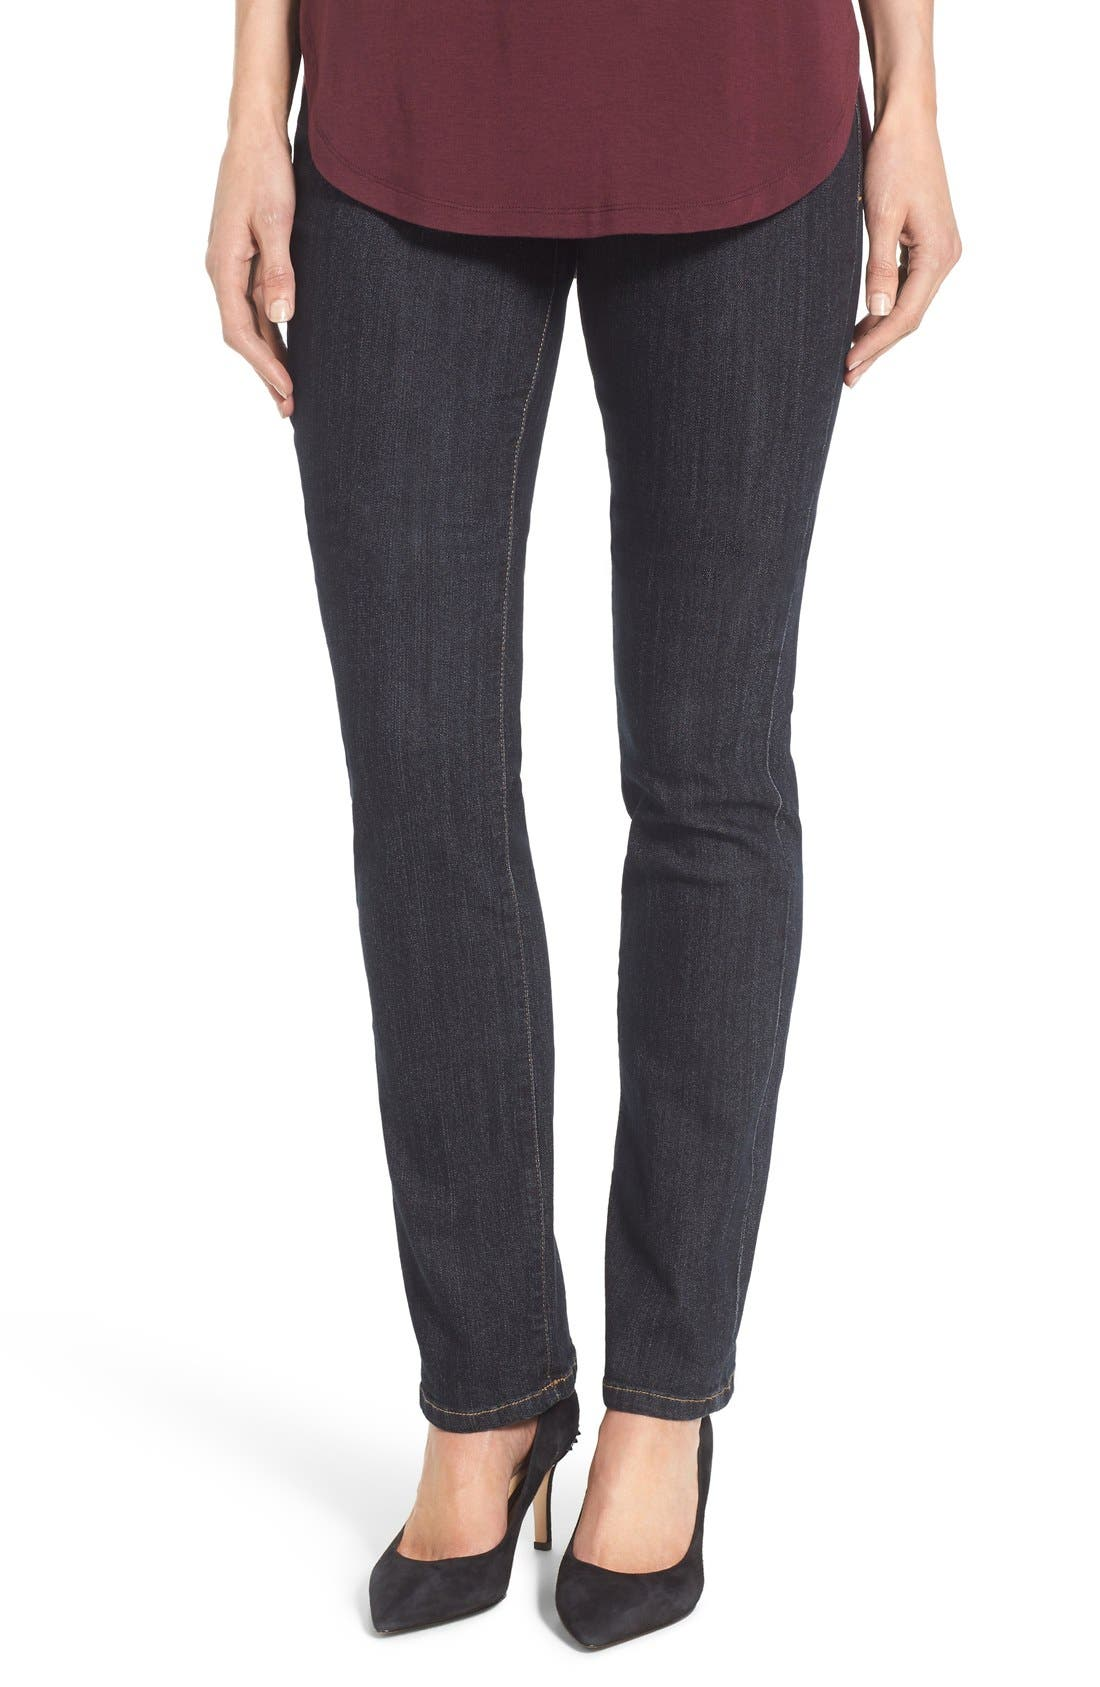 Main Image - Jag Jeans 'Peri' Pull-On Stretch Straight Leg Jeans (Late Night) (Regular & Petite) (Online Only)